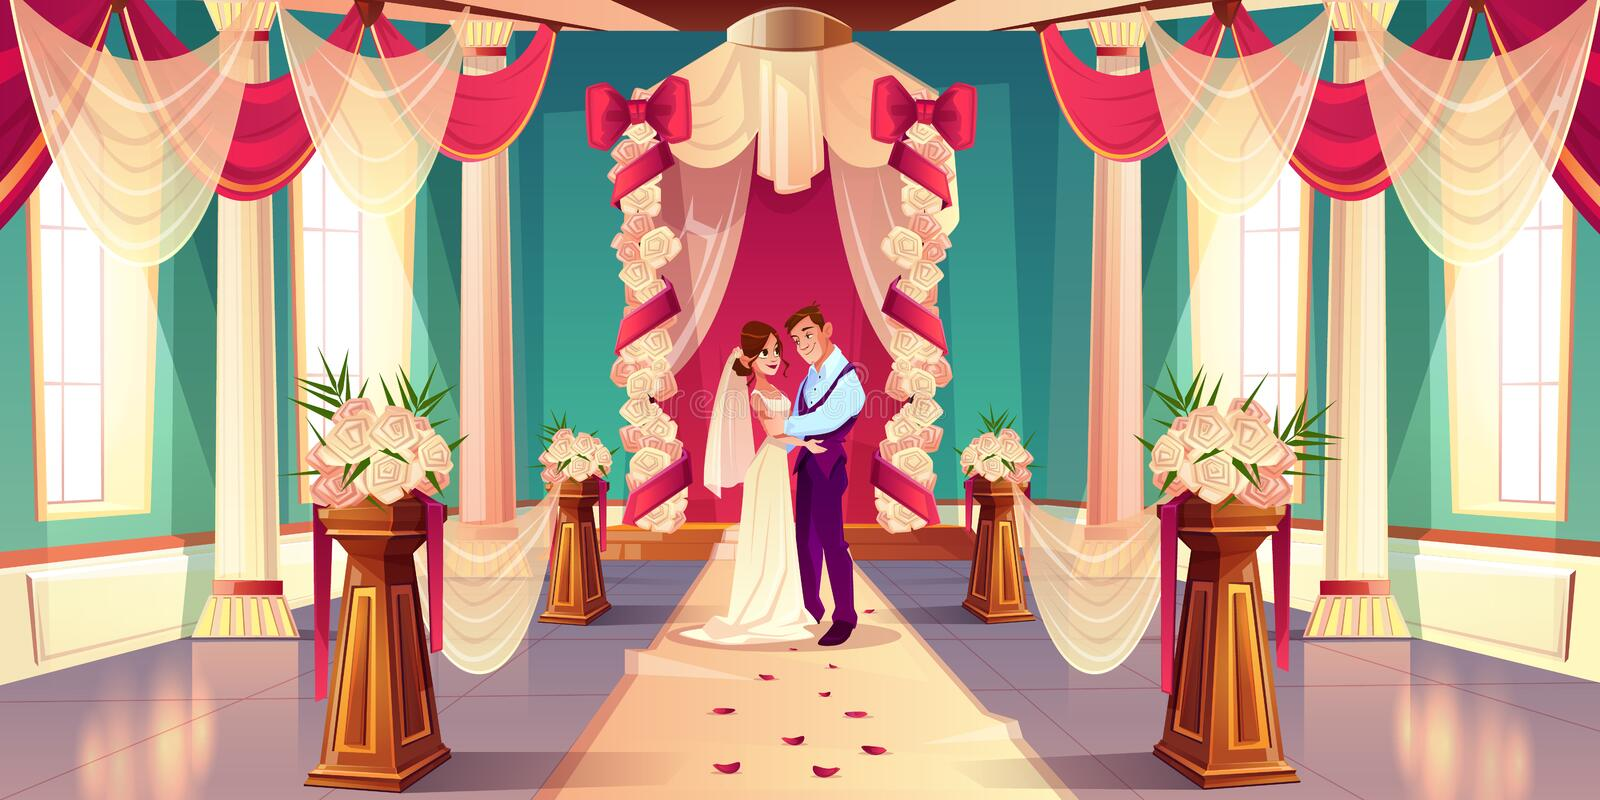 Newlyweds on wedding ceremony cartoon vector. Happy bride and groom hugging, looking in each other eyes while standing together under wedding arch in decorated vector illustration